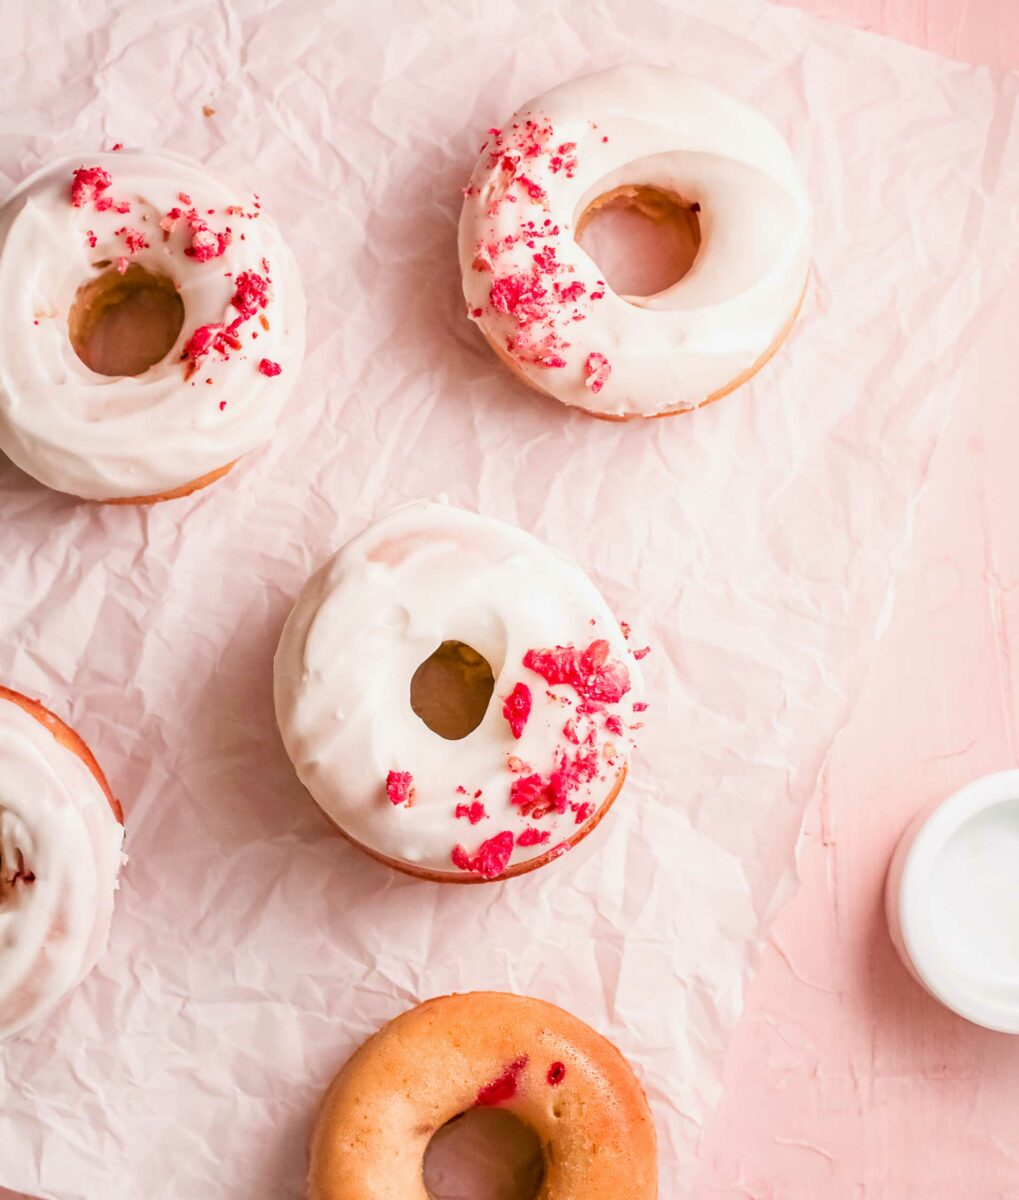 Donuts are garnished in white icing and freeze dried raspberries on a sheet of parchment paper.